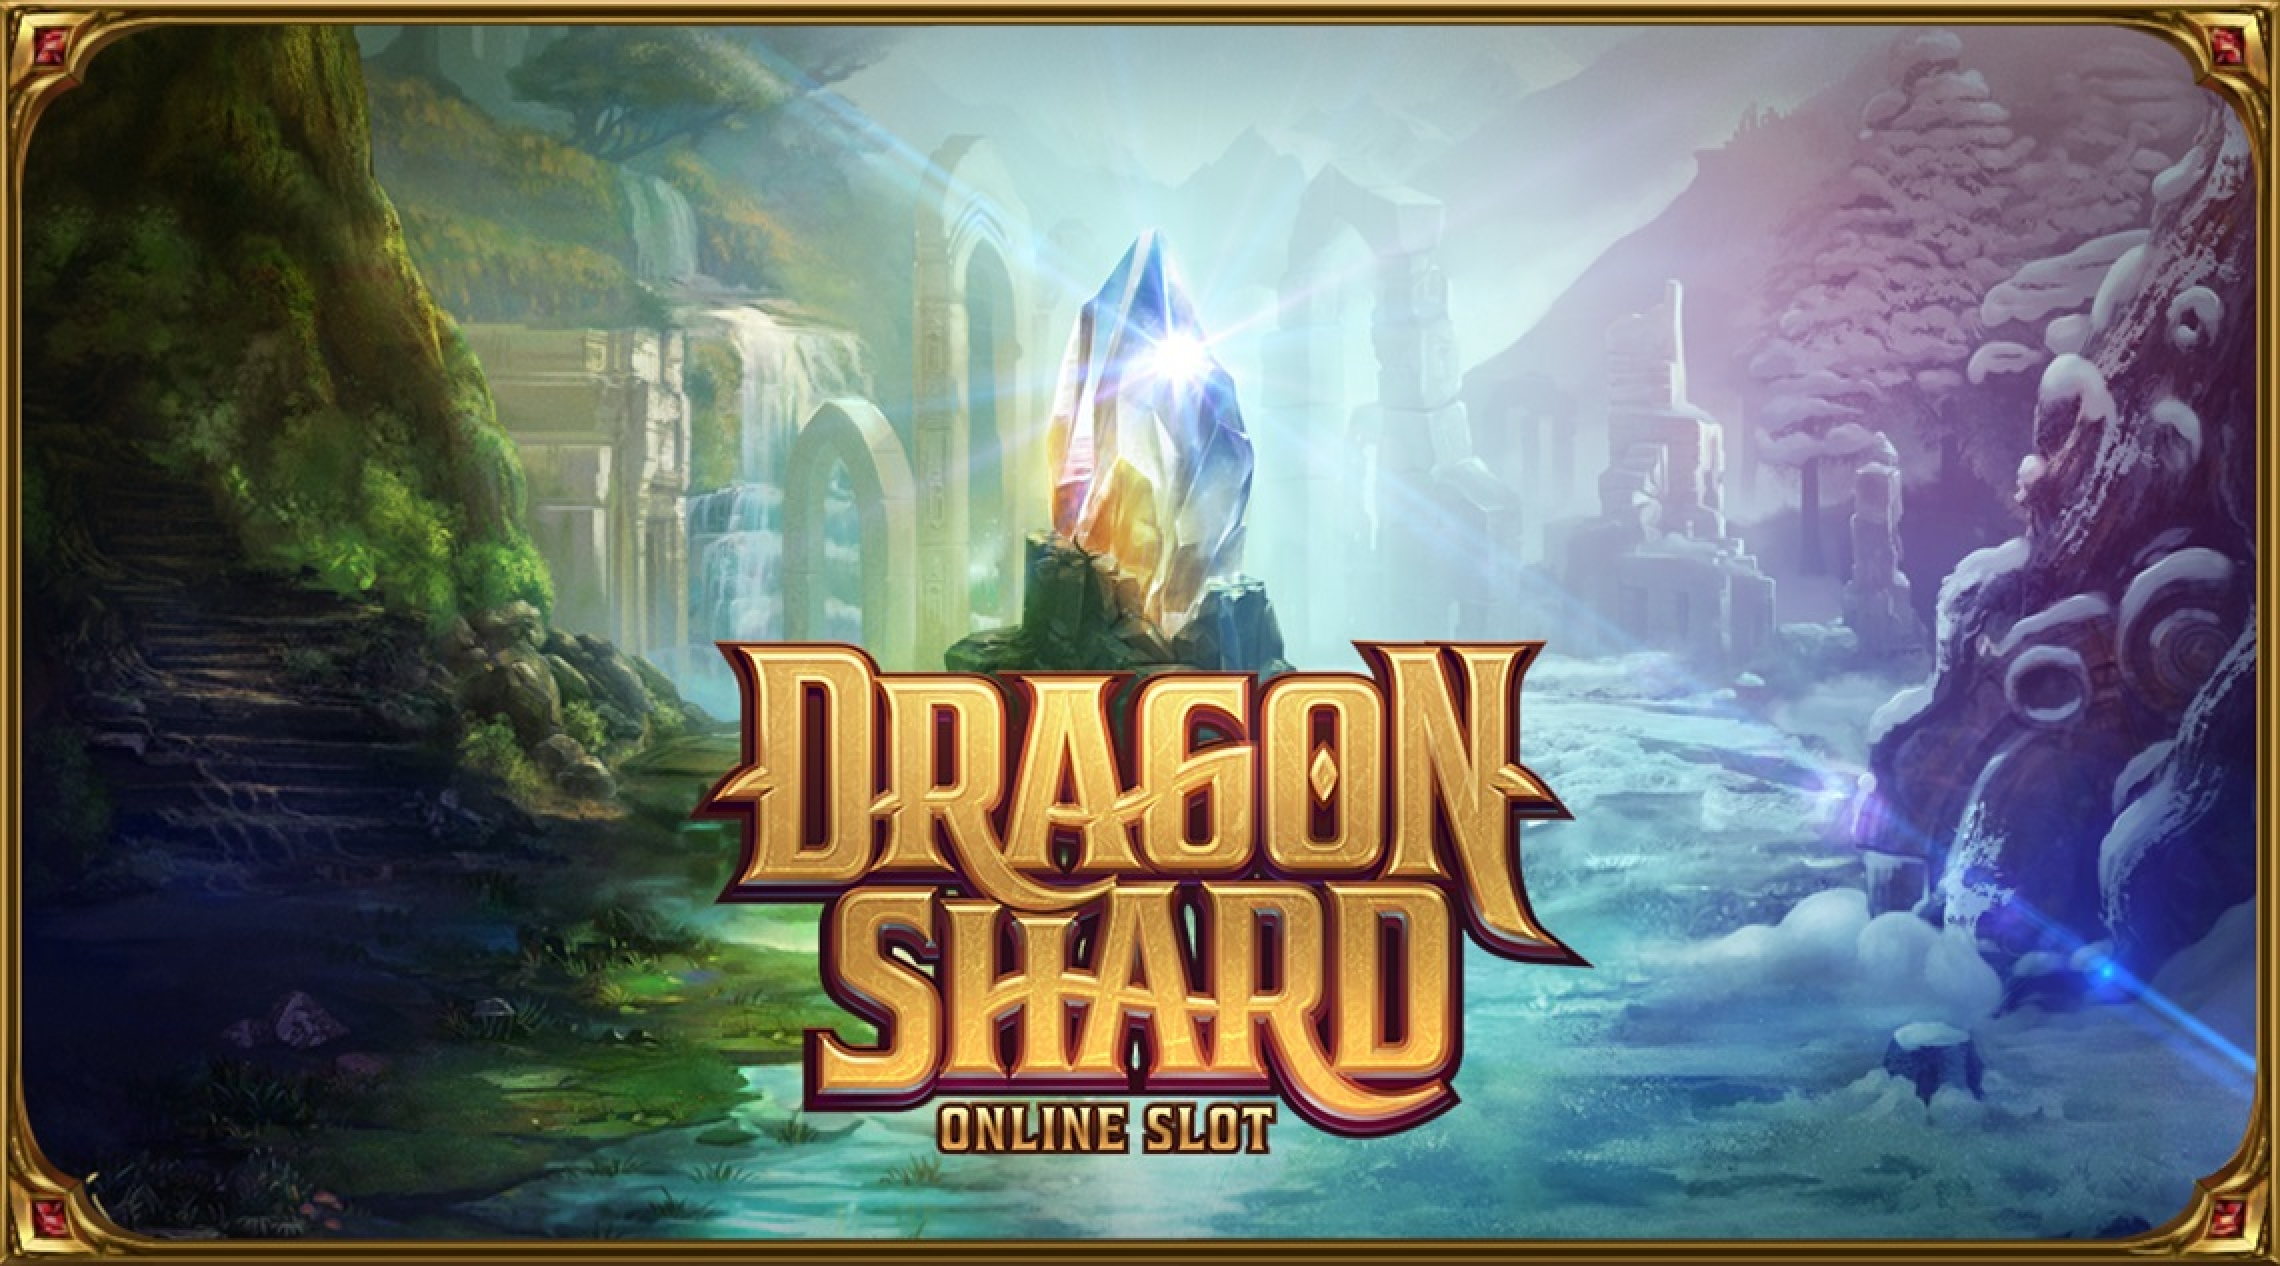 The Dragon Shard Online Slot Demo Game by Stormcraft Studios